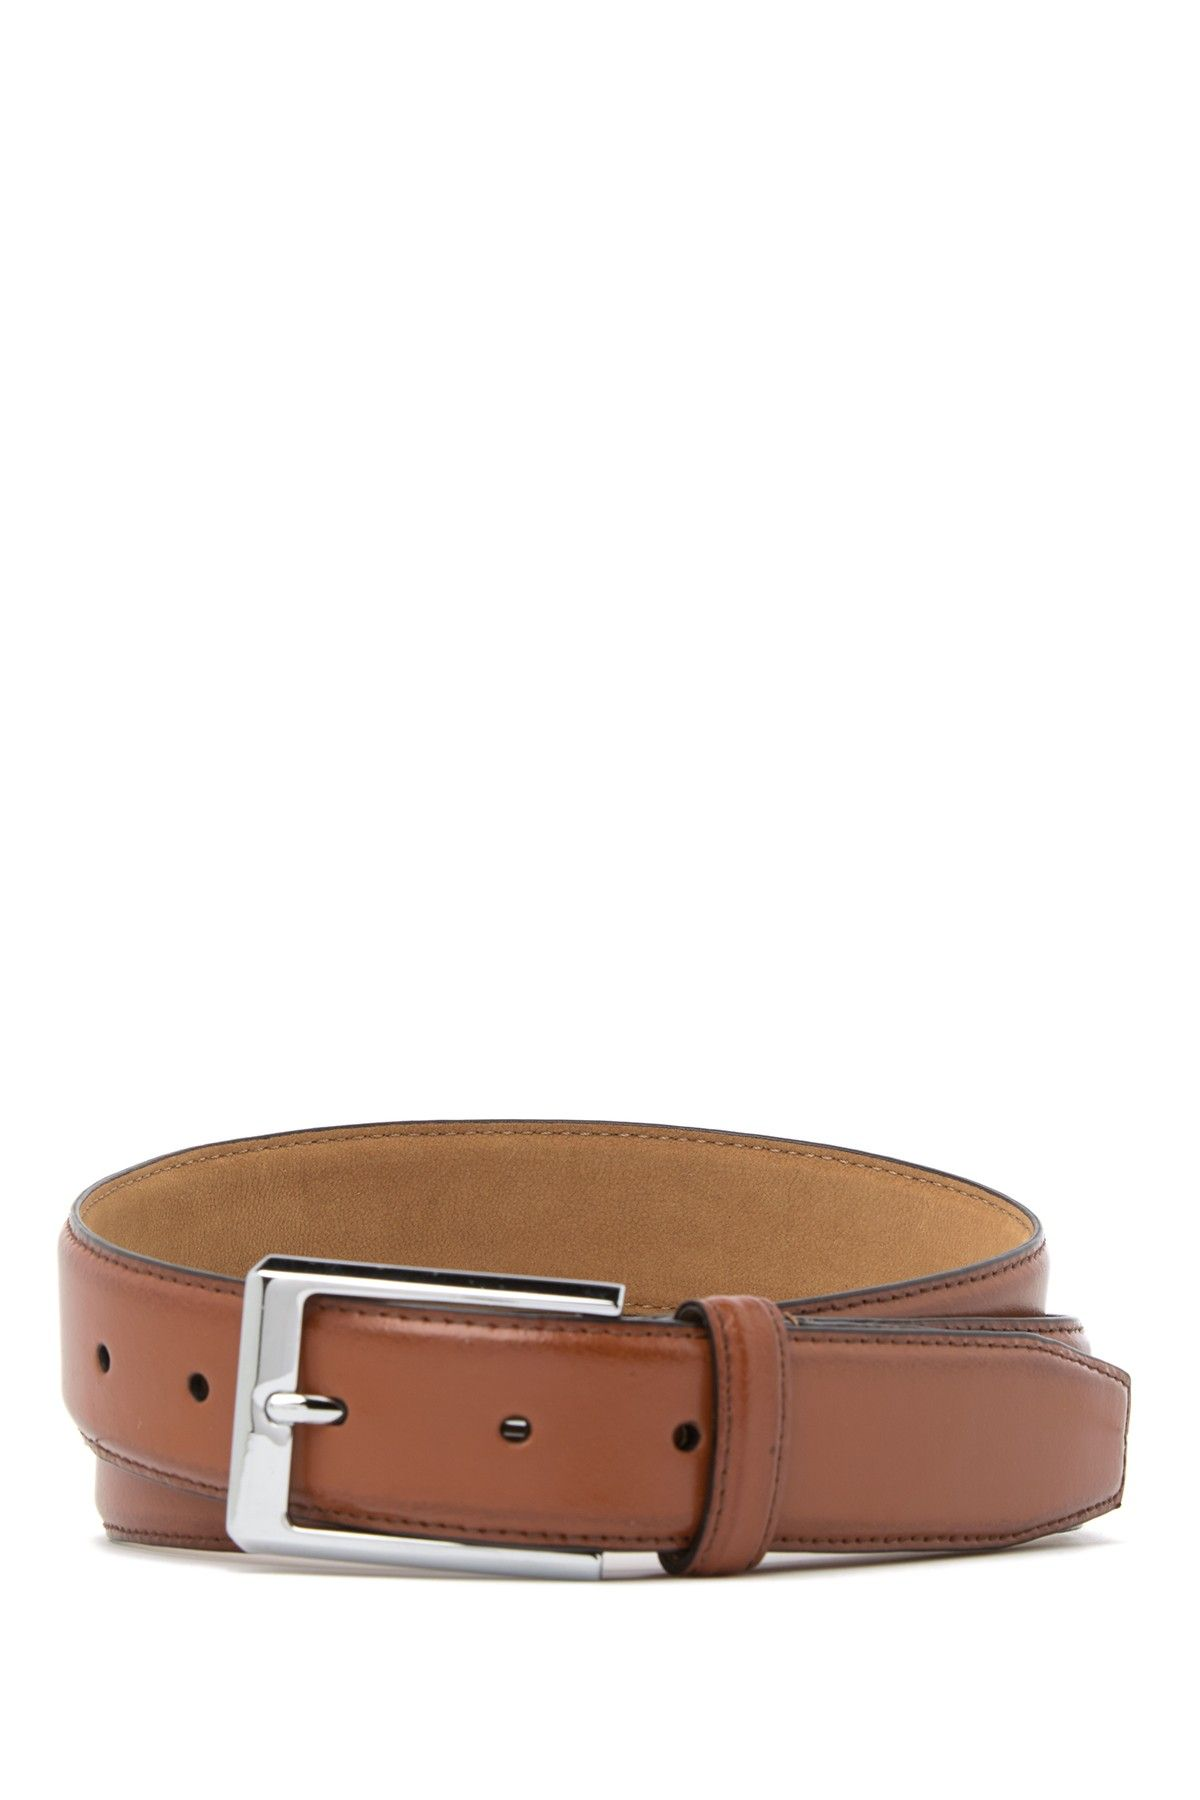 COLE HAAN MEN'S BELT FEATHERED EDGE LEATHER BELT IN TAN NEW W//TAGS